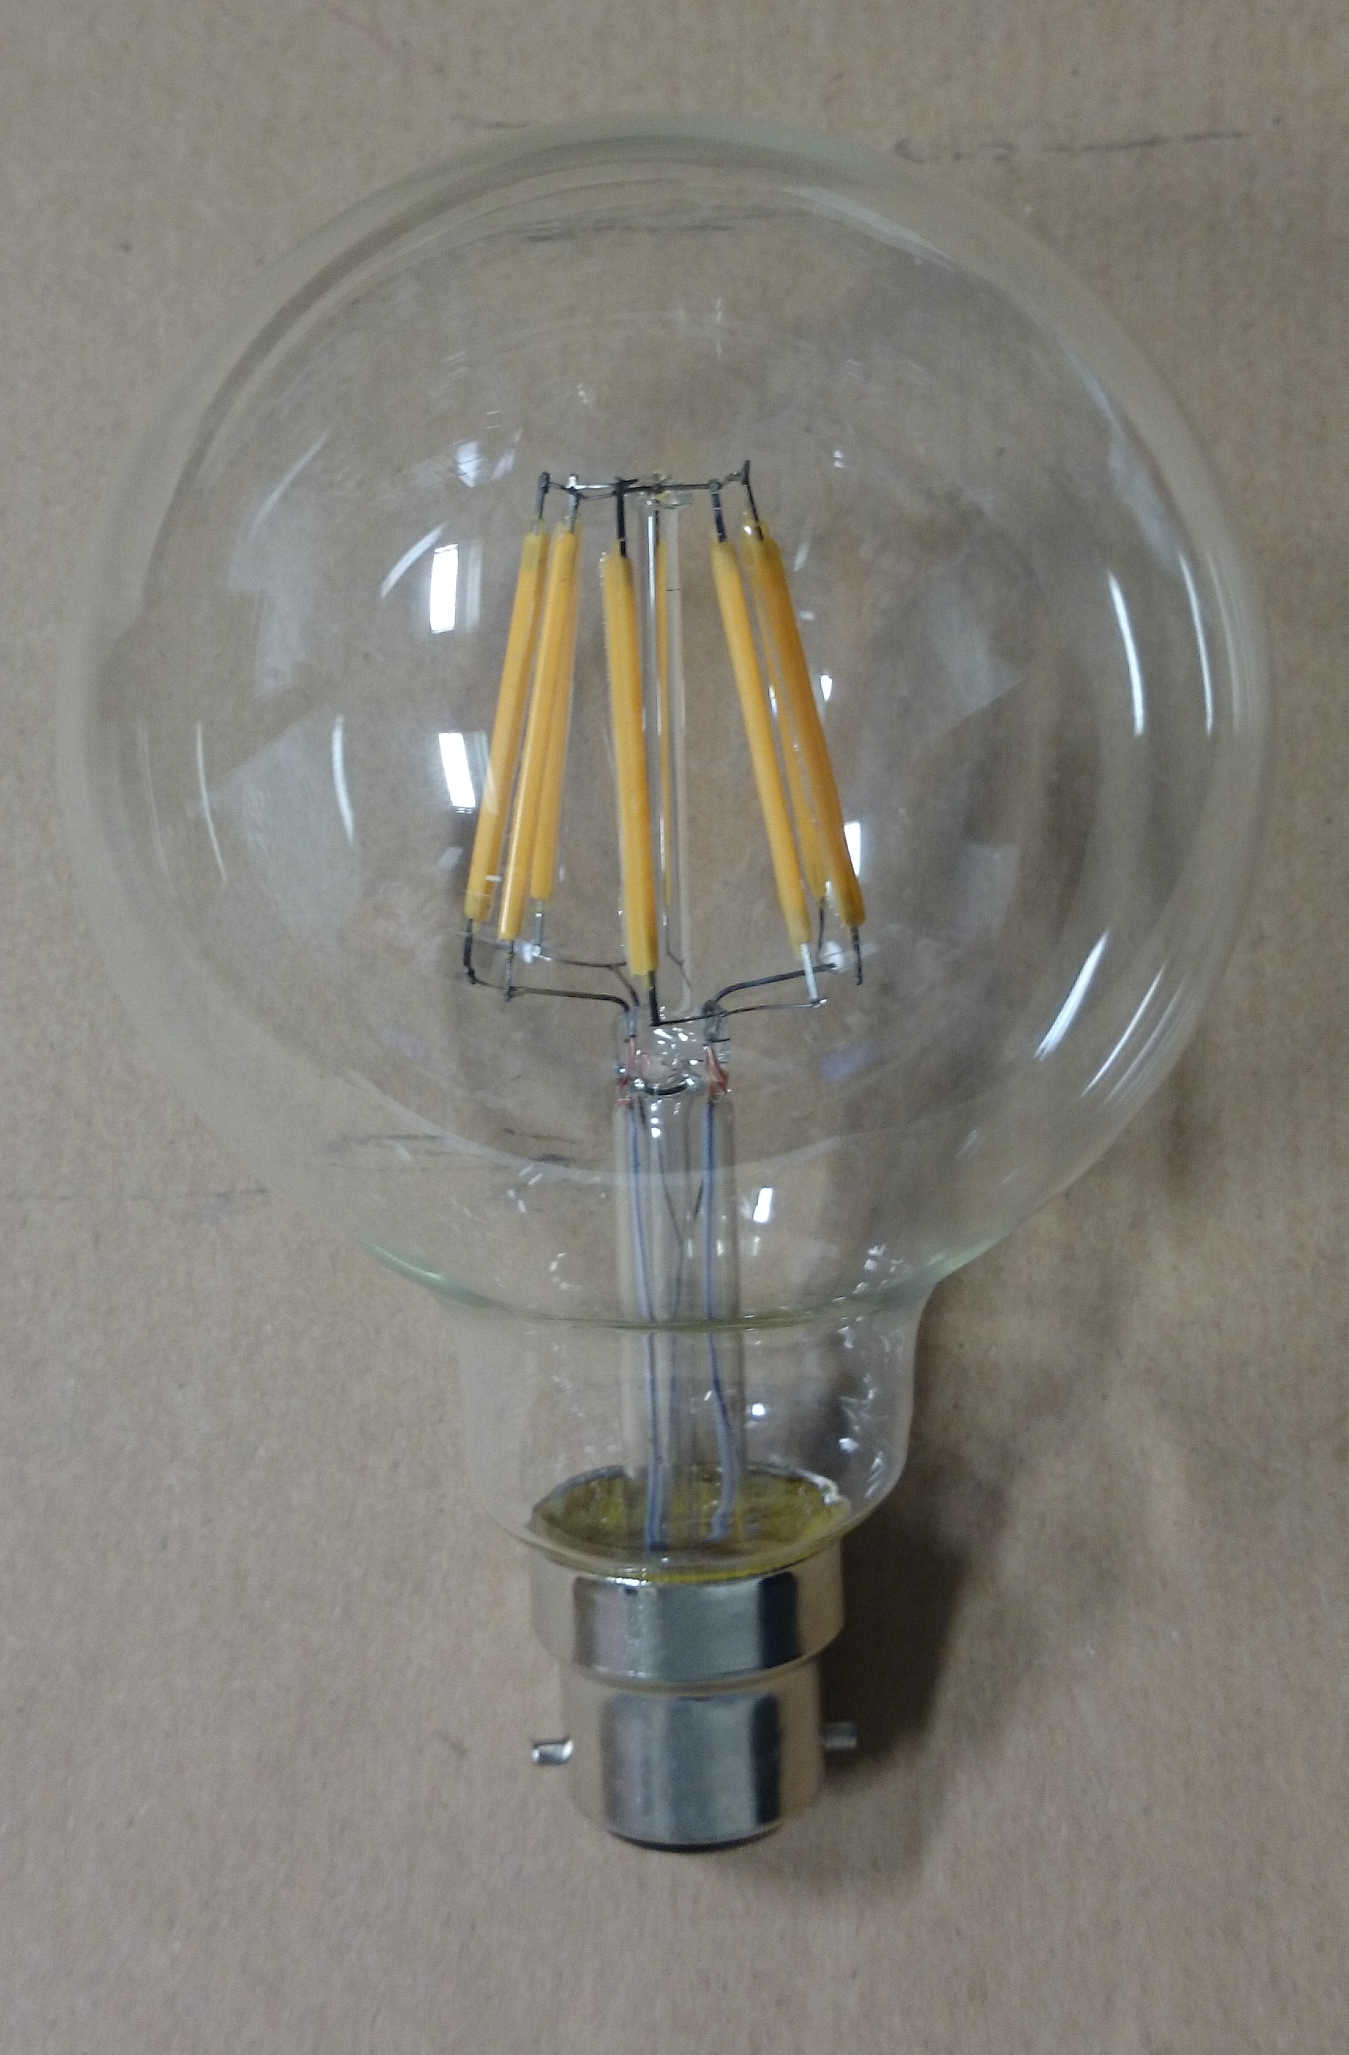 6w Led To Replace Vintage Incandescent G95 Bc B22 Globe Light Bulb Non Dimmable Liminaires